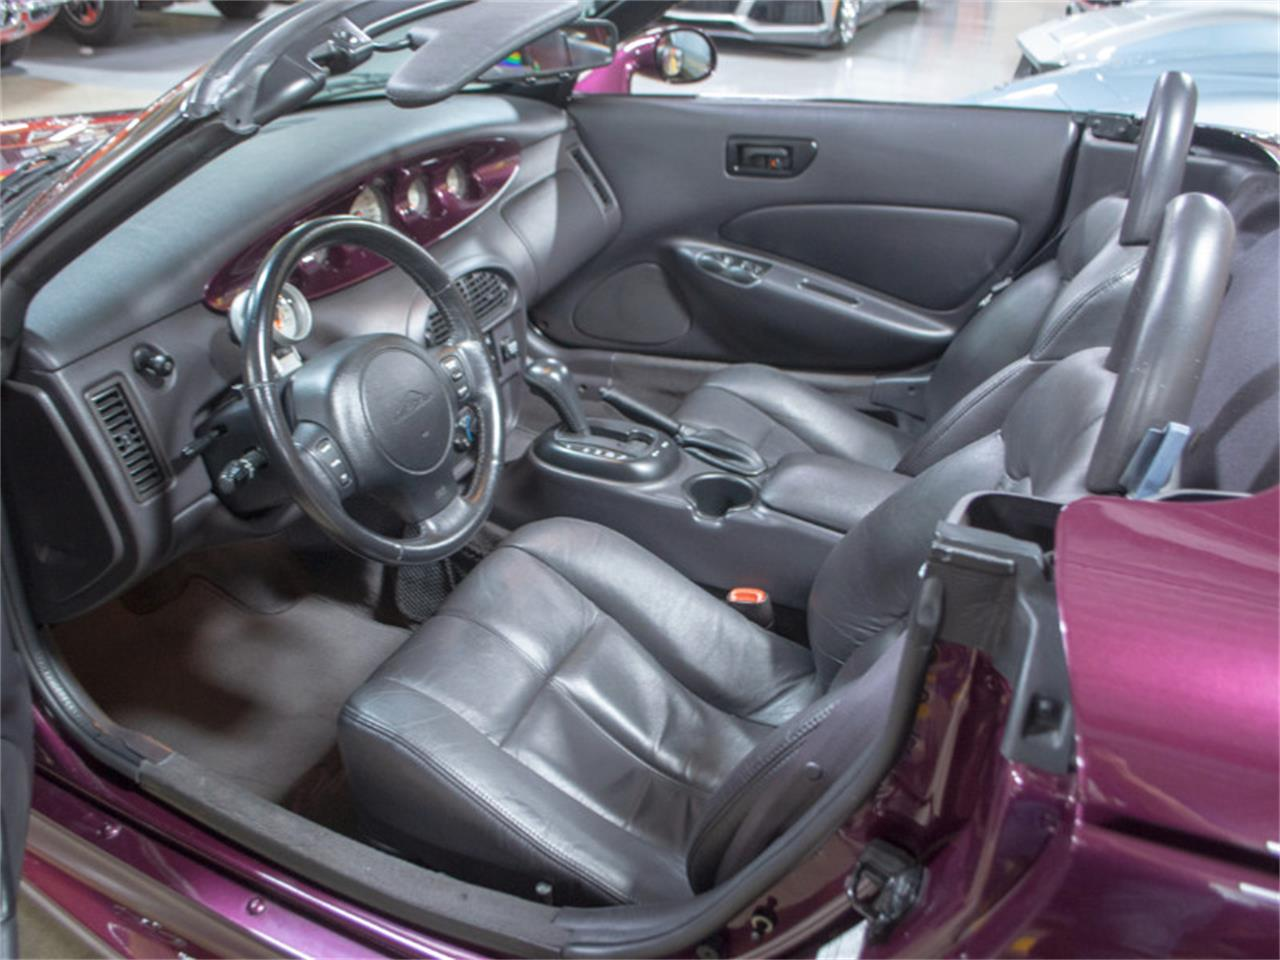 1999 Plymouth Prowler for sale in Anaheim, CA – photo 18